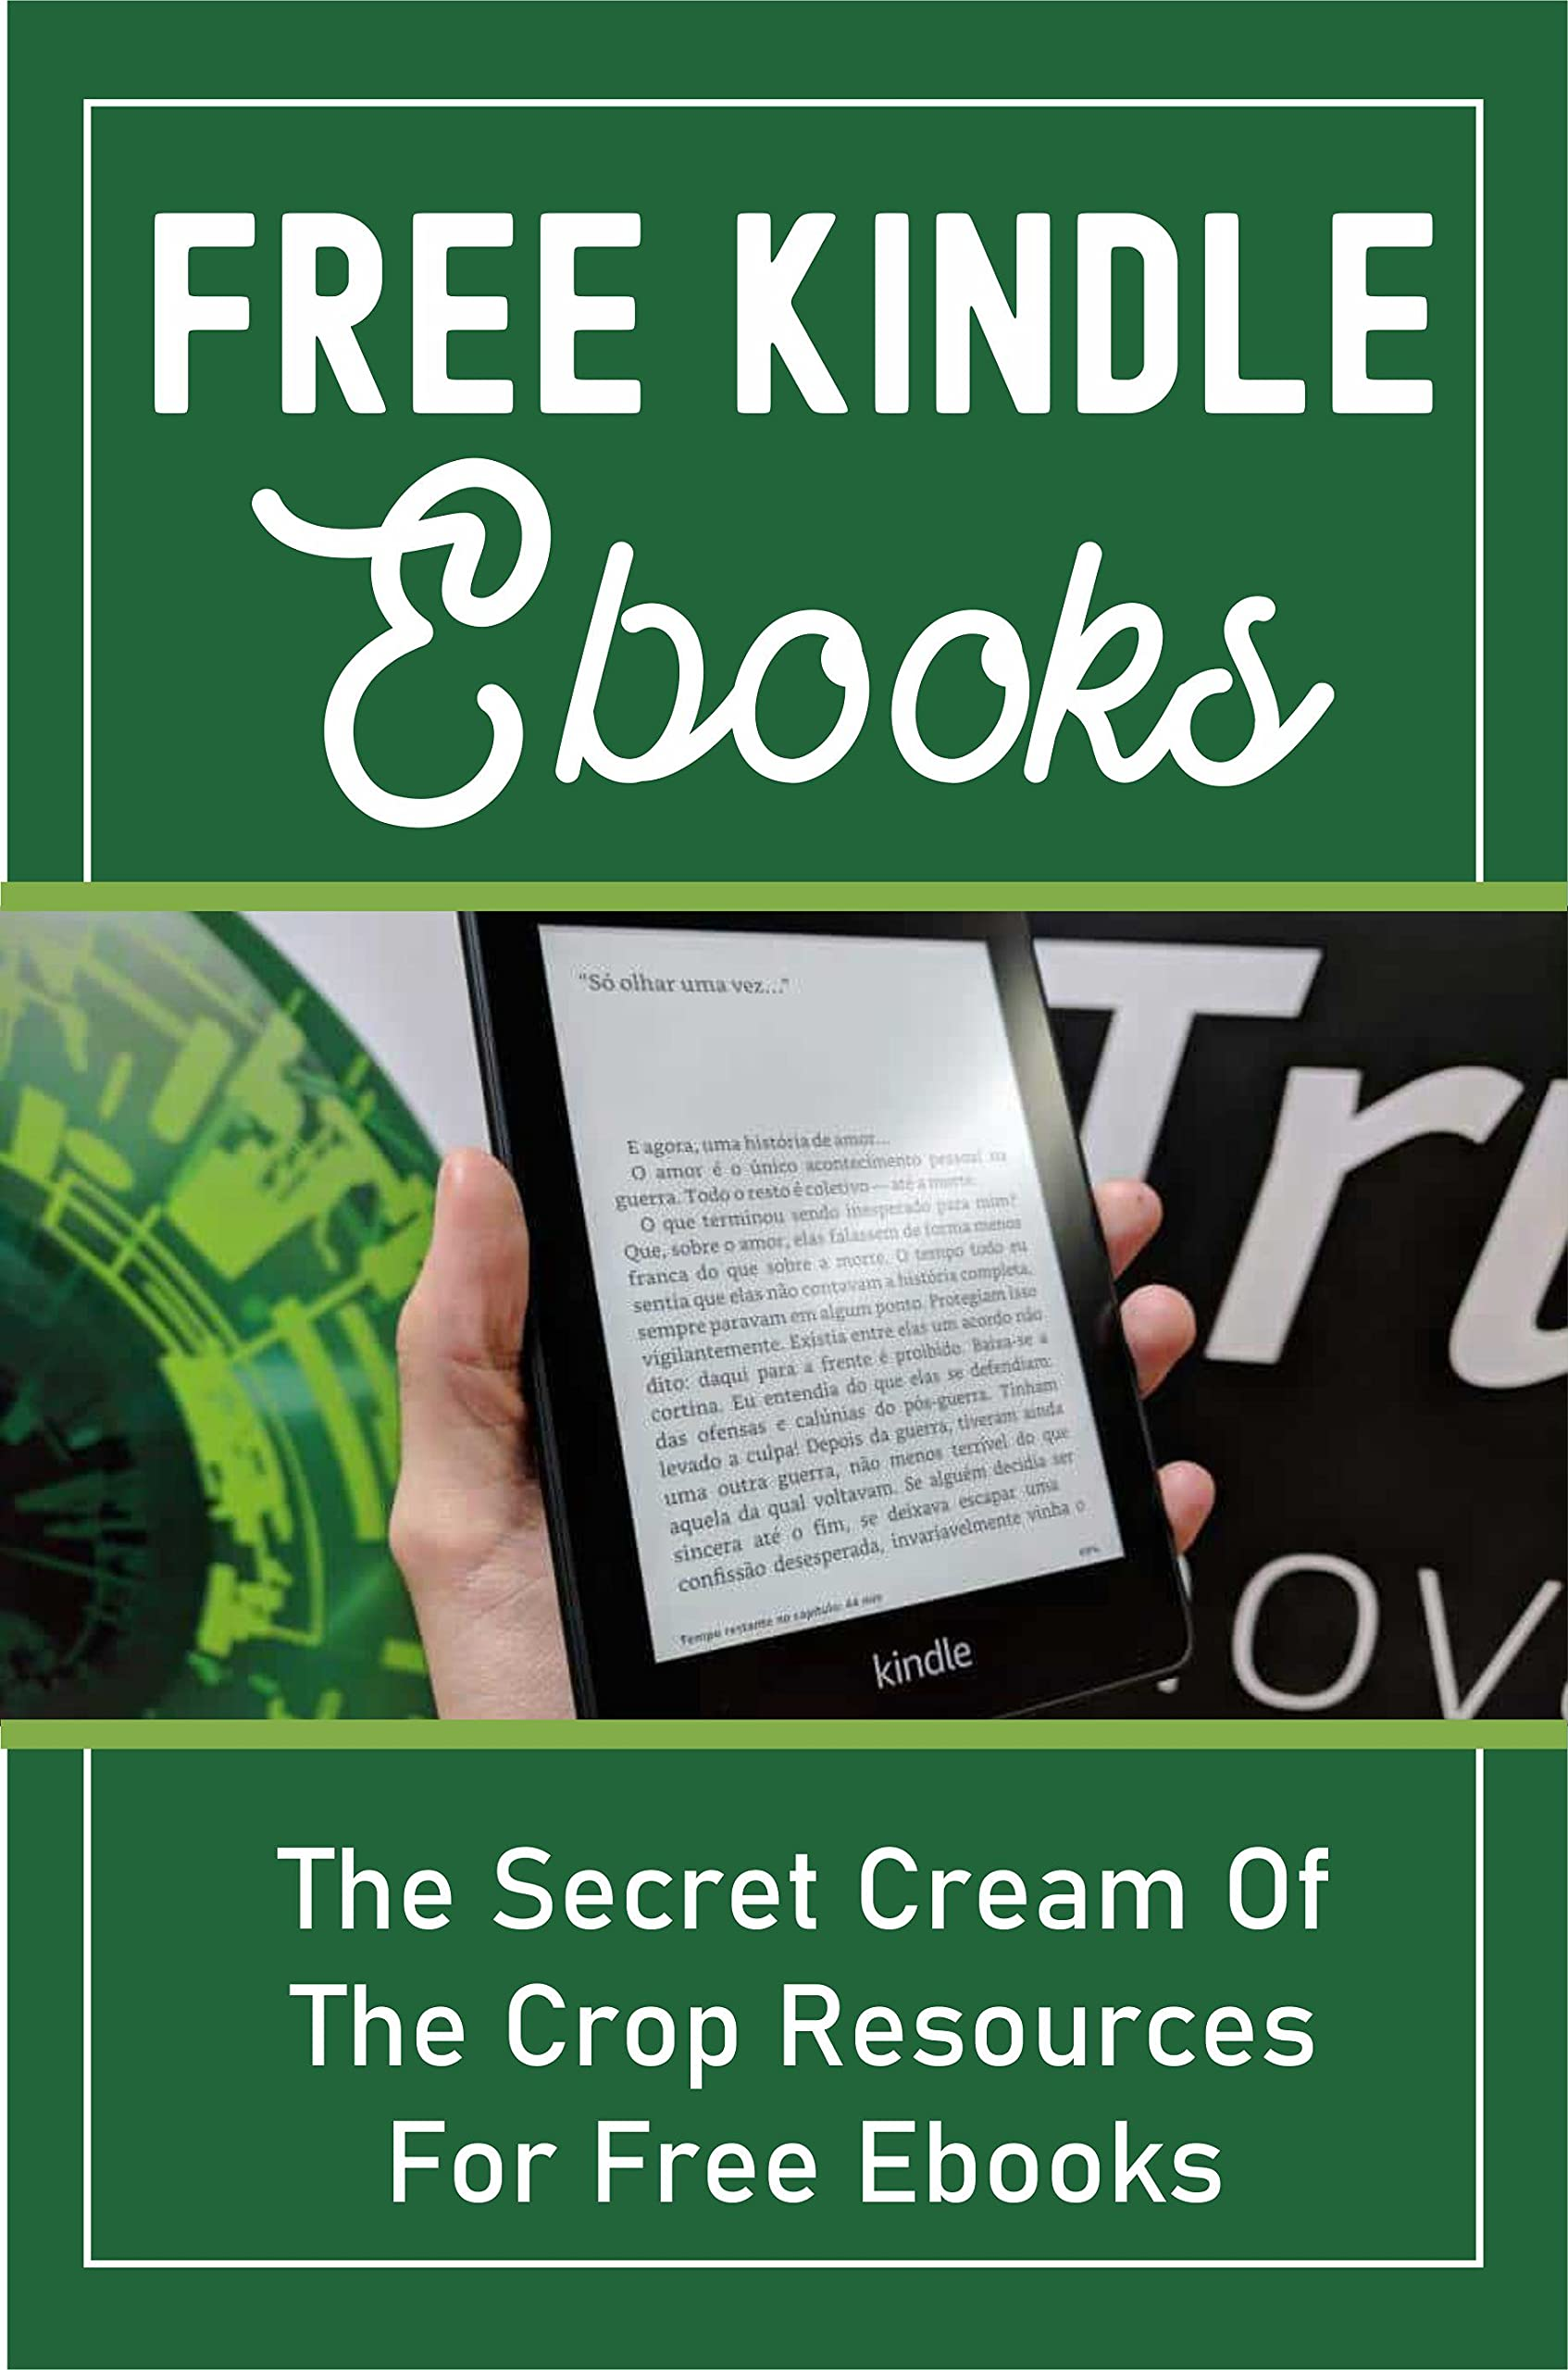 Free Kindle Ebooks: The Secret Cream Of The Crop Resources For Free Ebooks: How To Find Kindle Unlimited Books With Free Audio